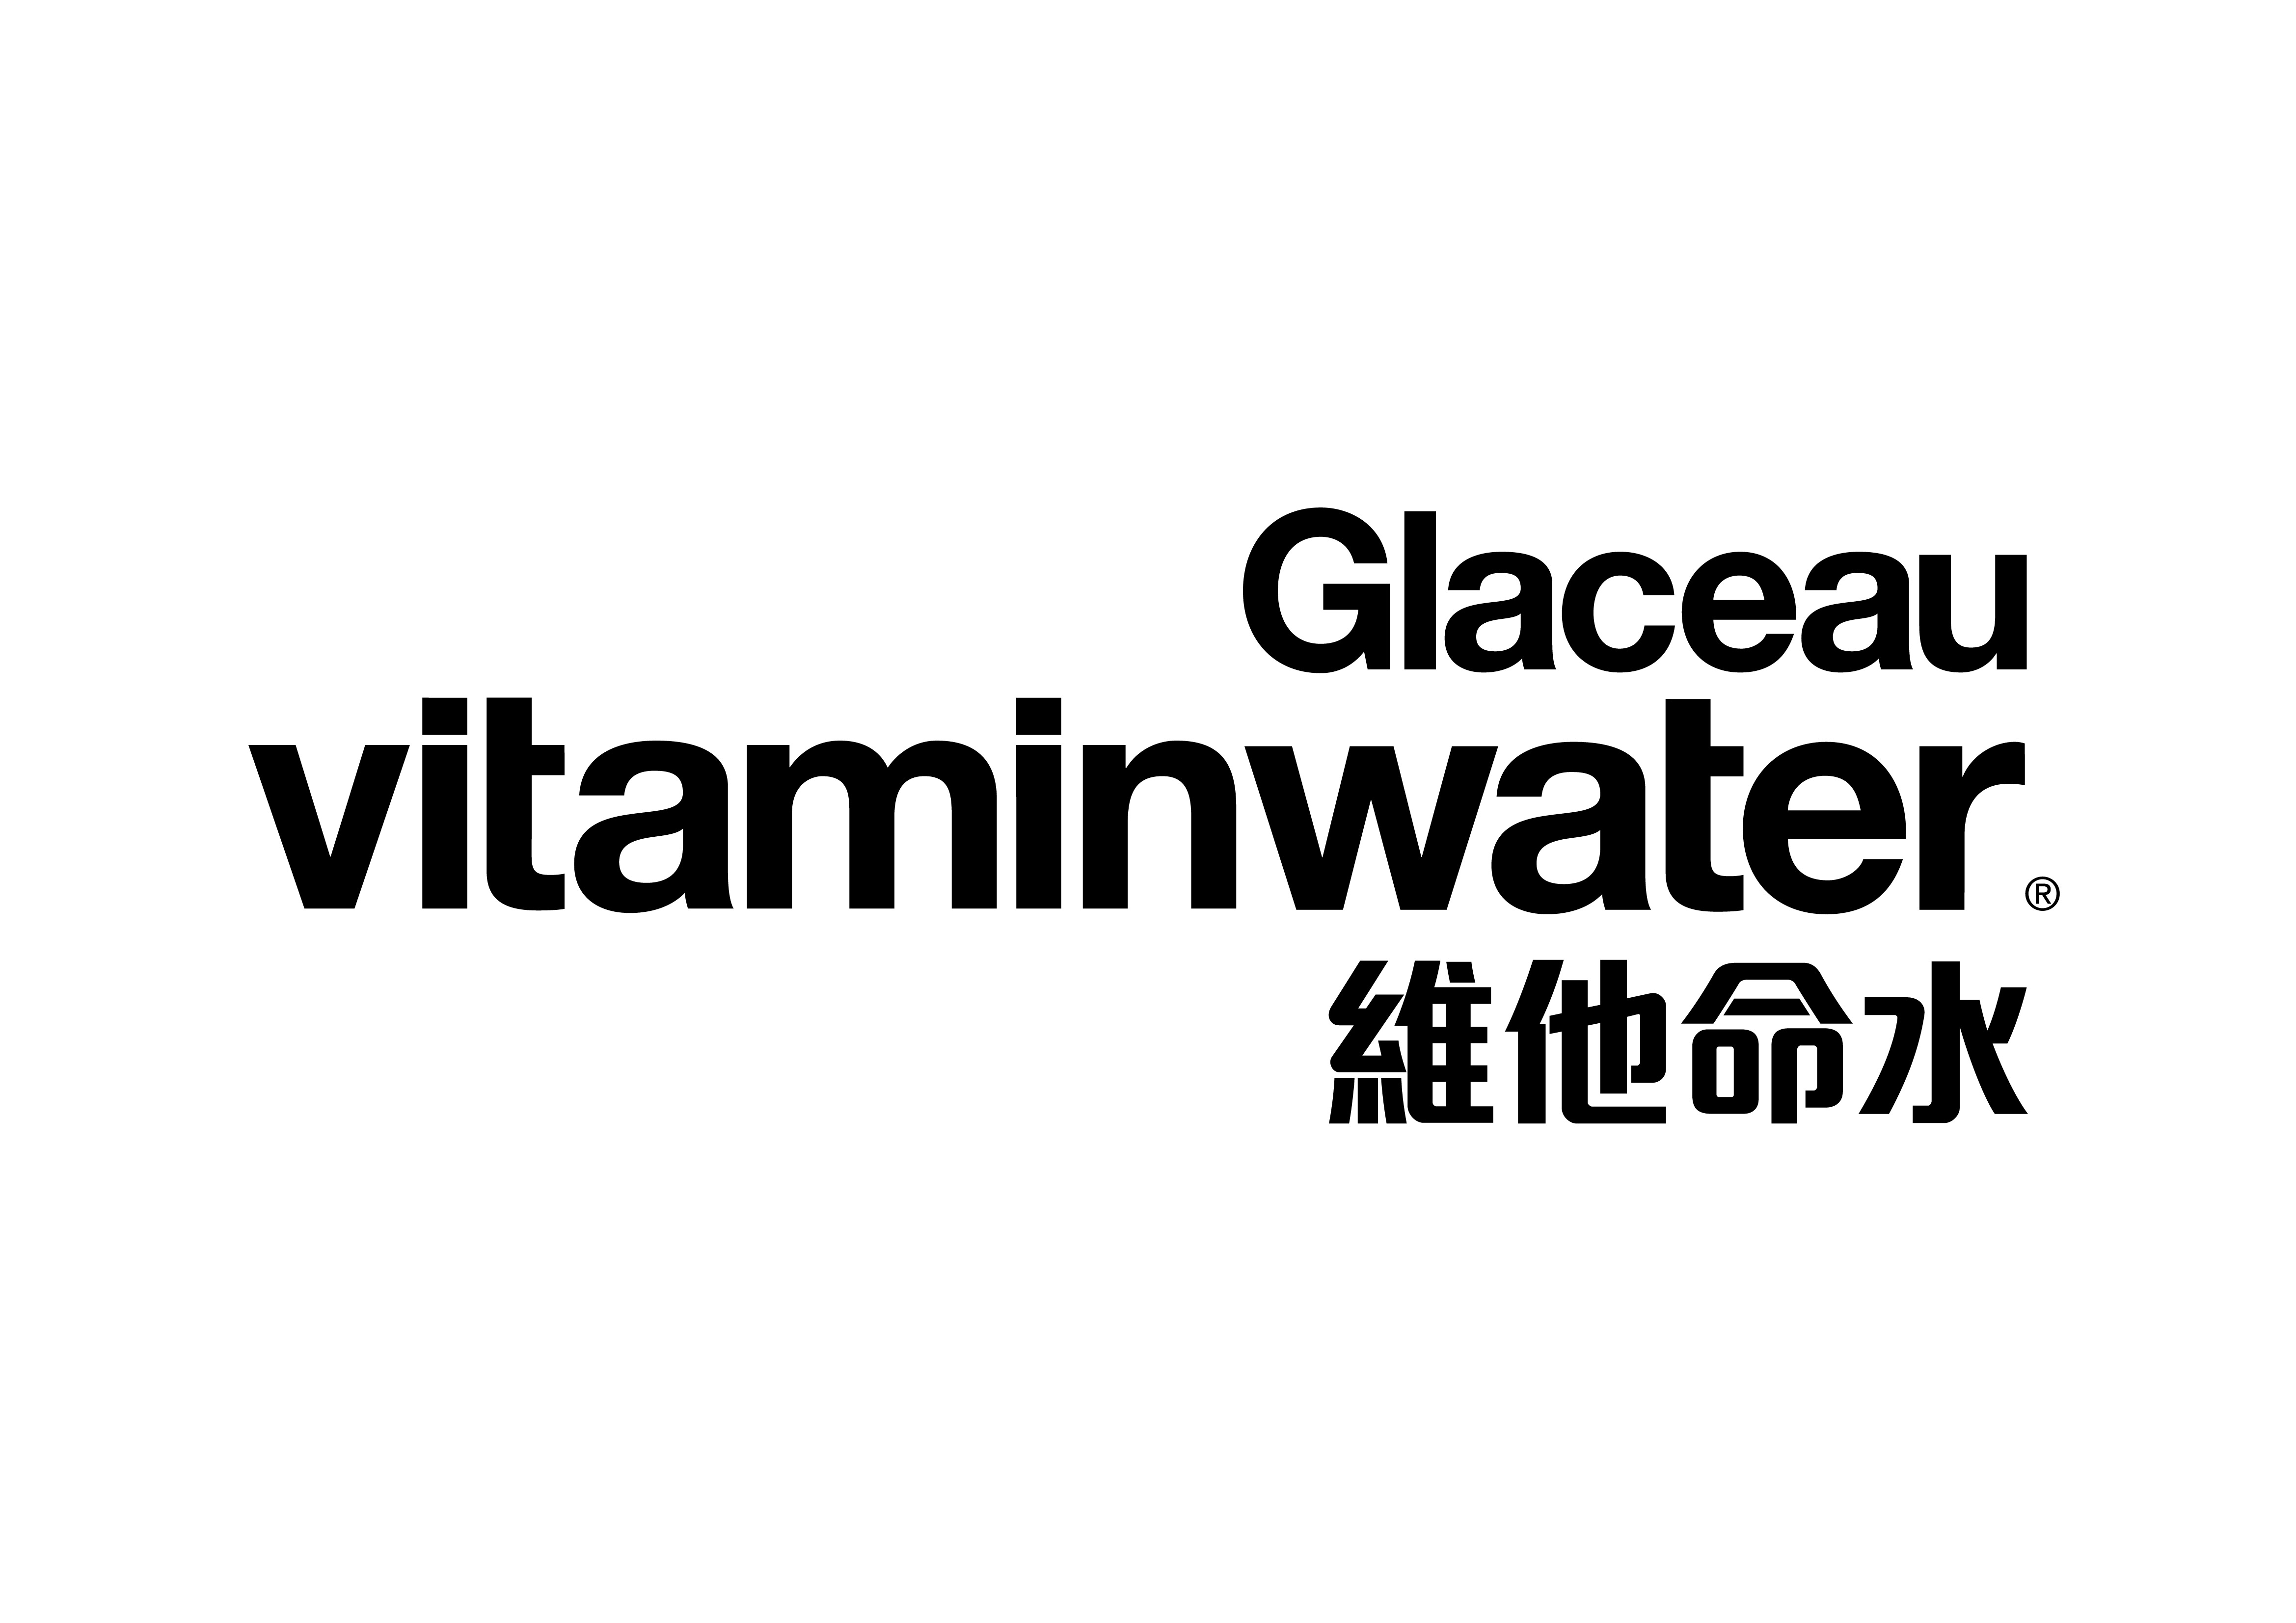 Glaceau vitaminwater logo